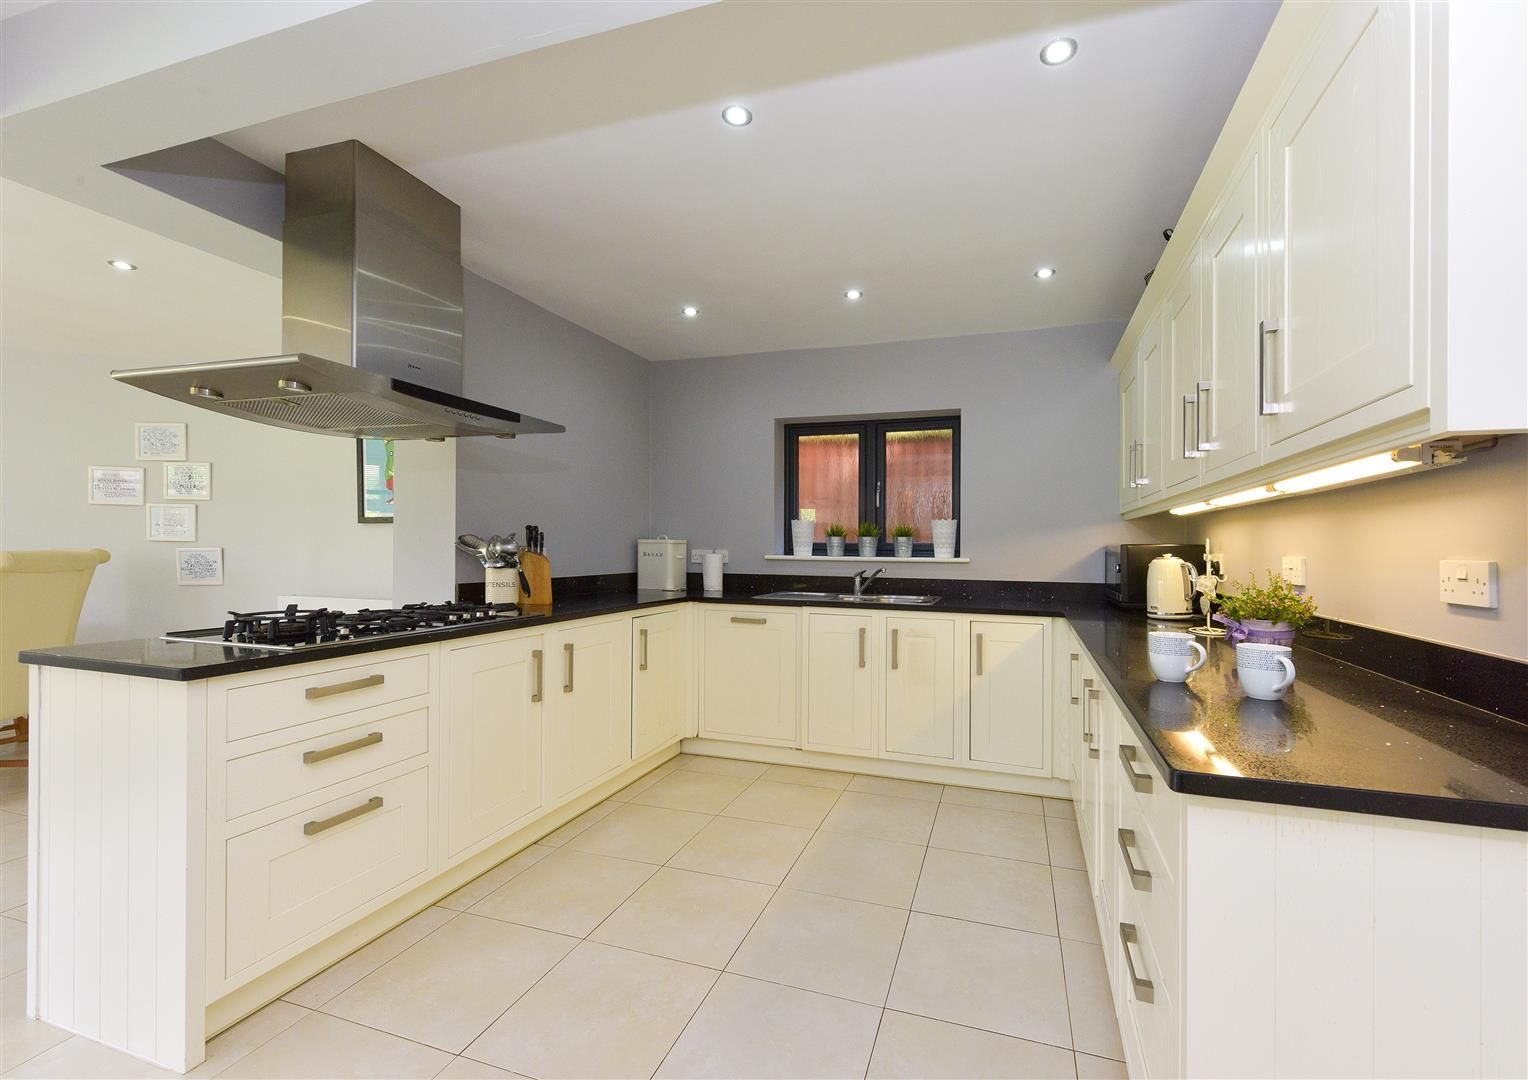 5 bed house for sale in Hagley 5